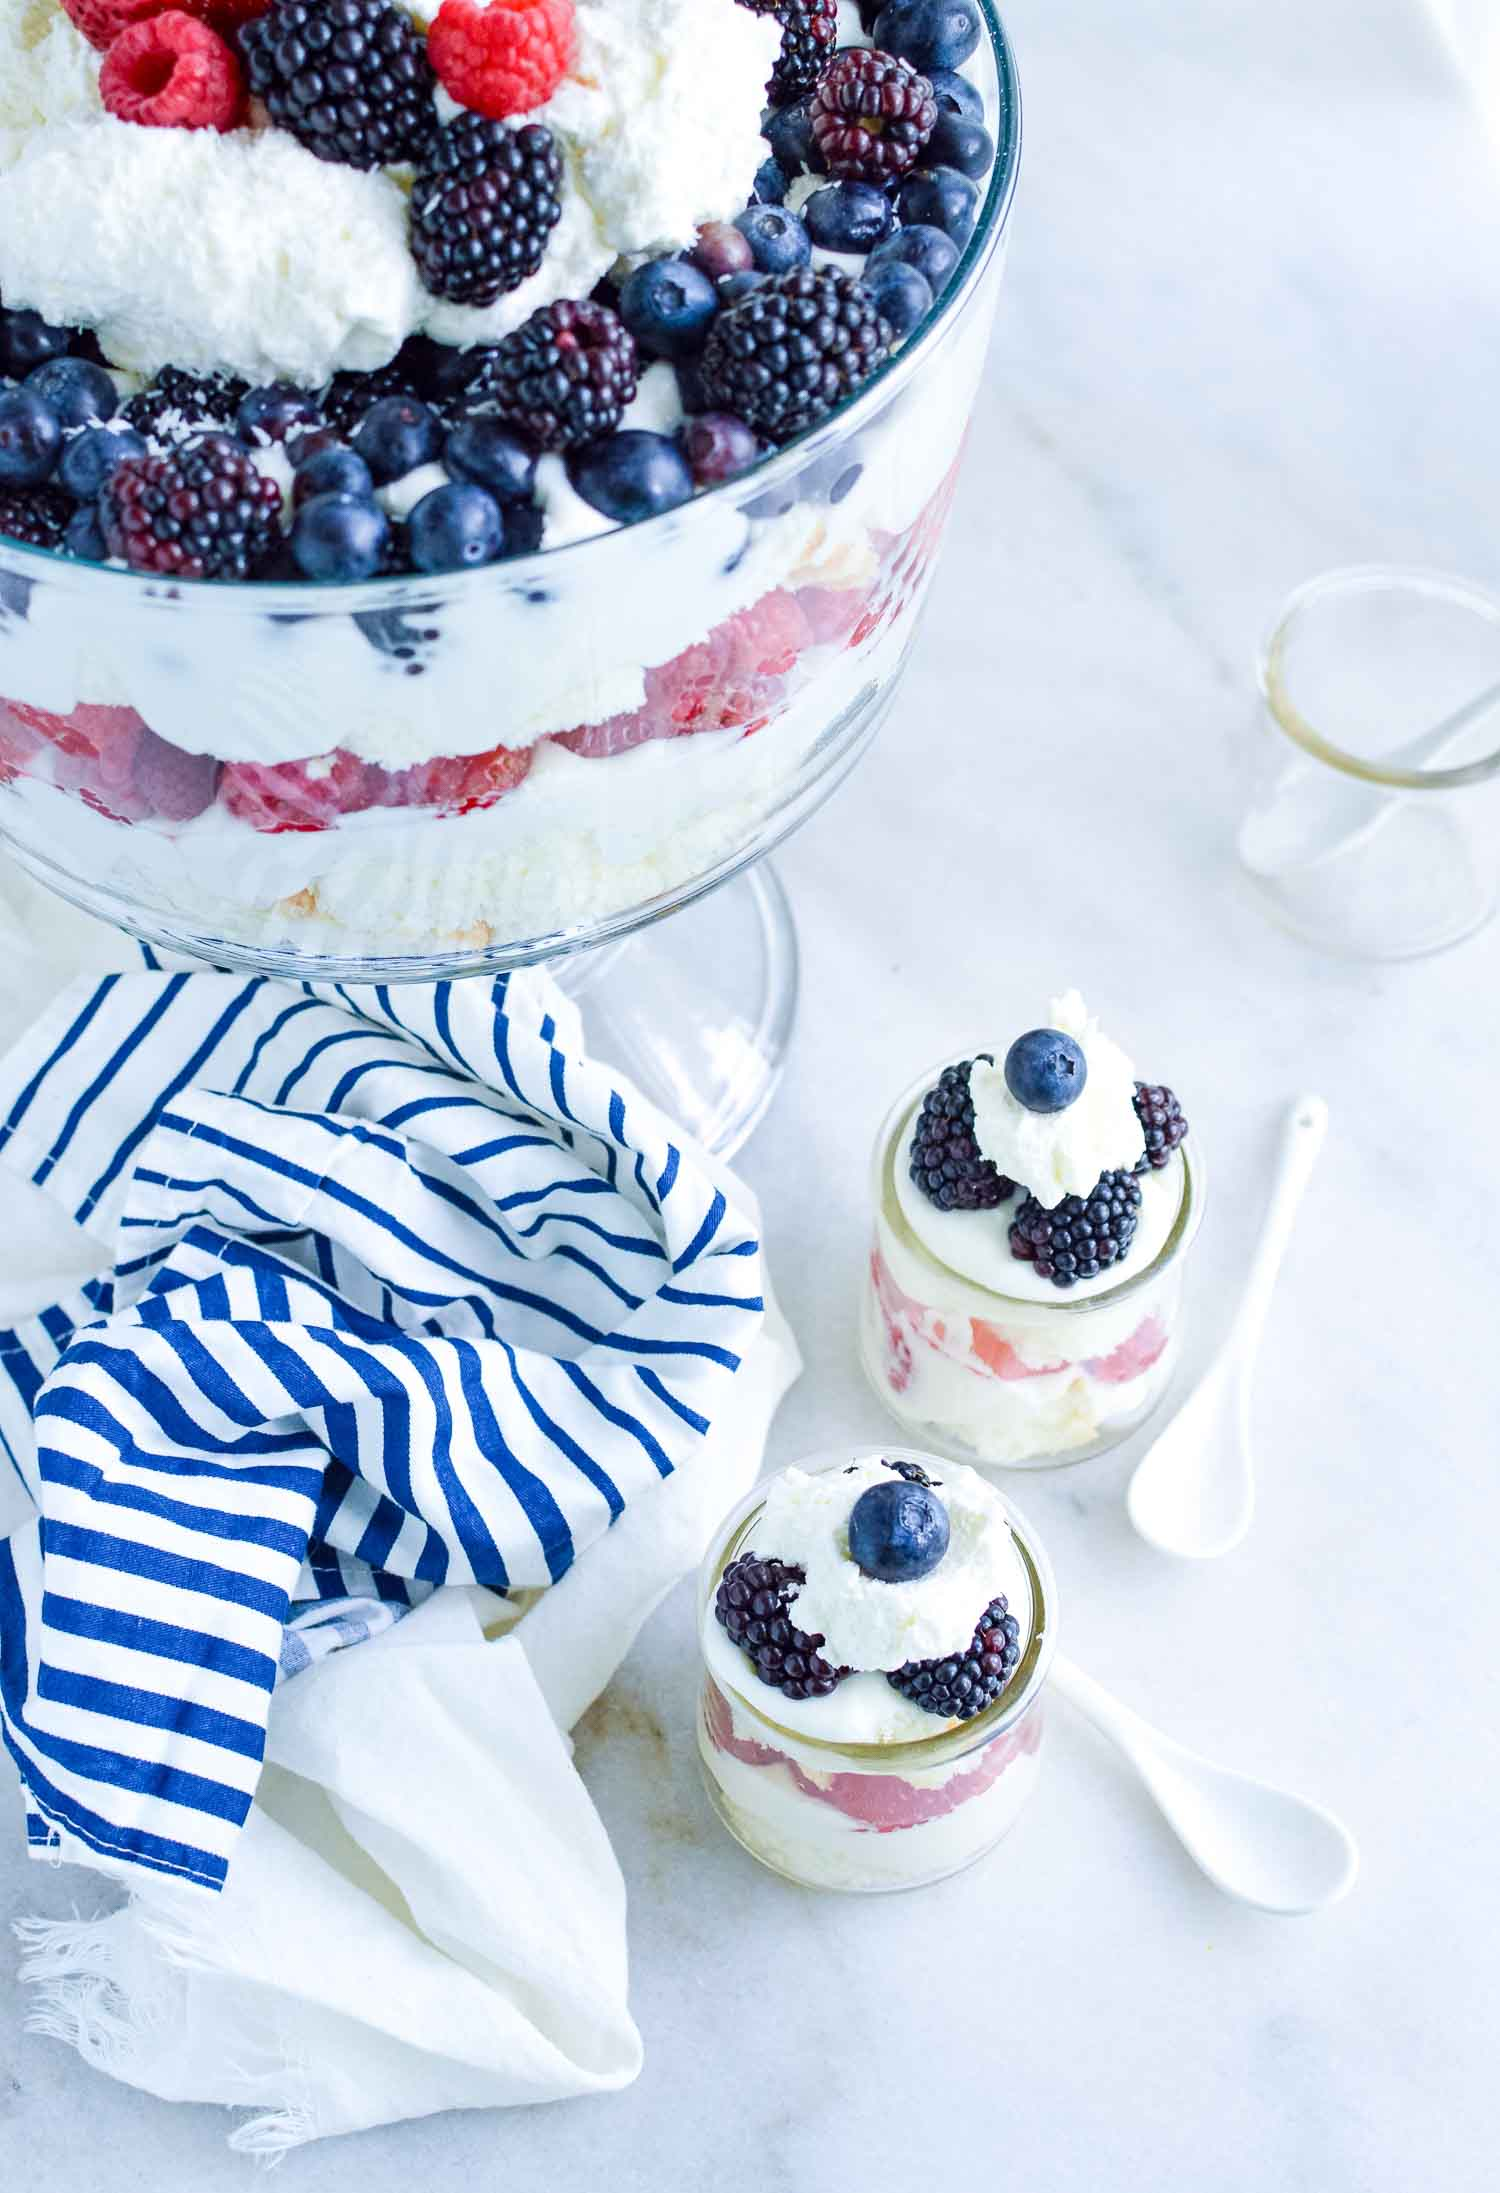 A clear glass dish filled with cake, berries, and cream with a blue and white towel around the bottom with two individual trifles and an empty glass cup with a few white spoons.